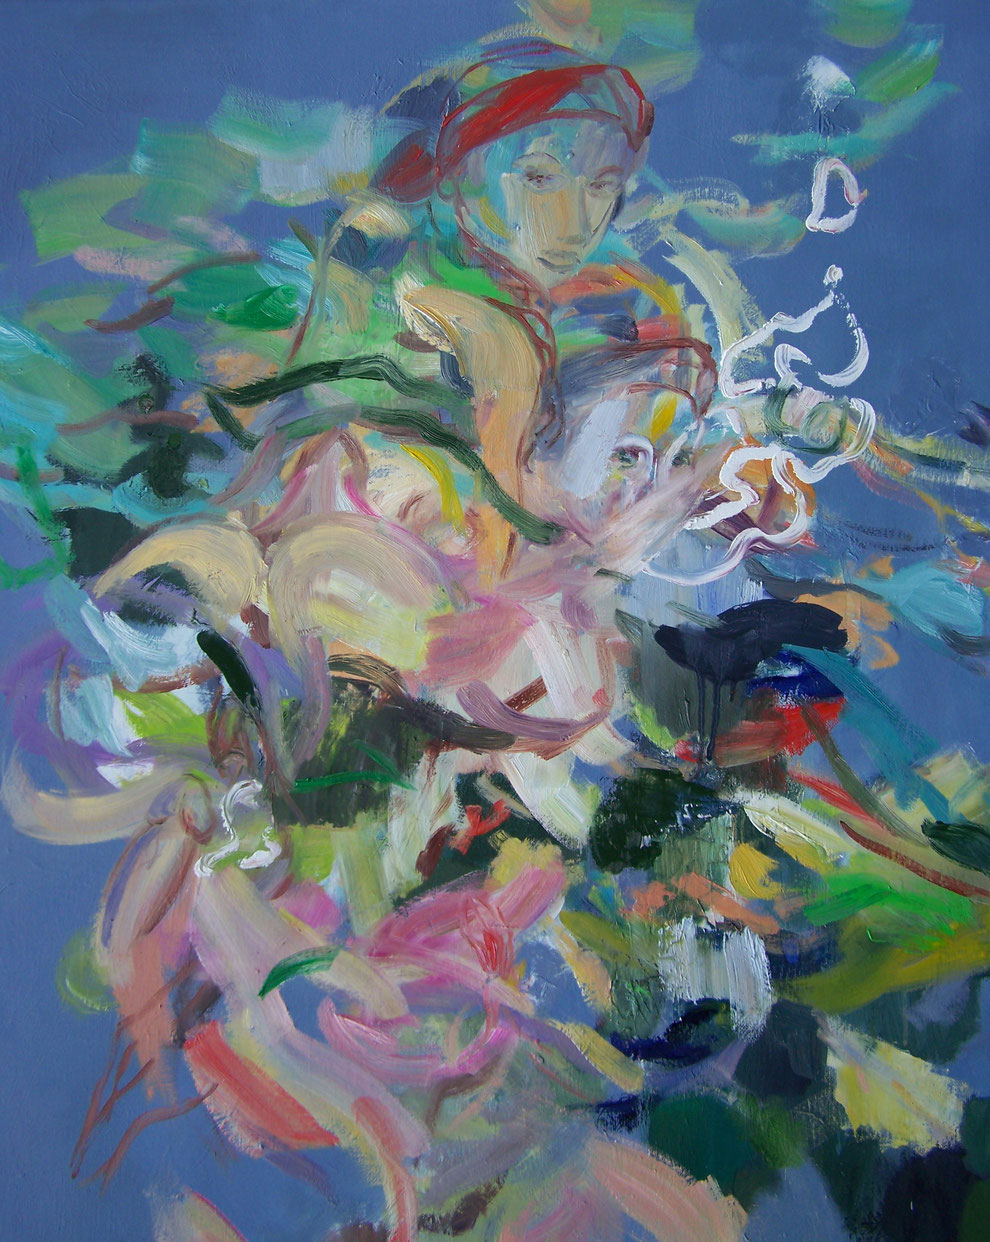 Judith - Komplott der Musen, Oil on canvas, 180 x 145 cm, 2013